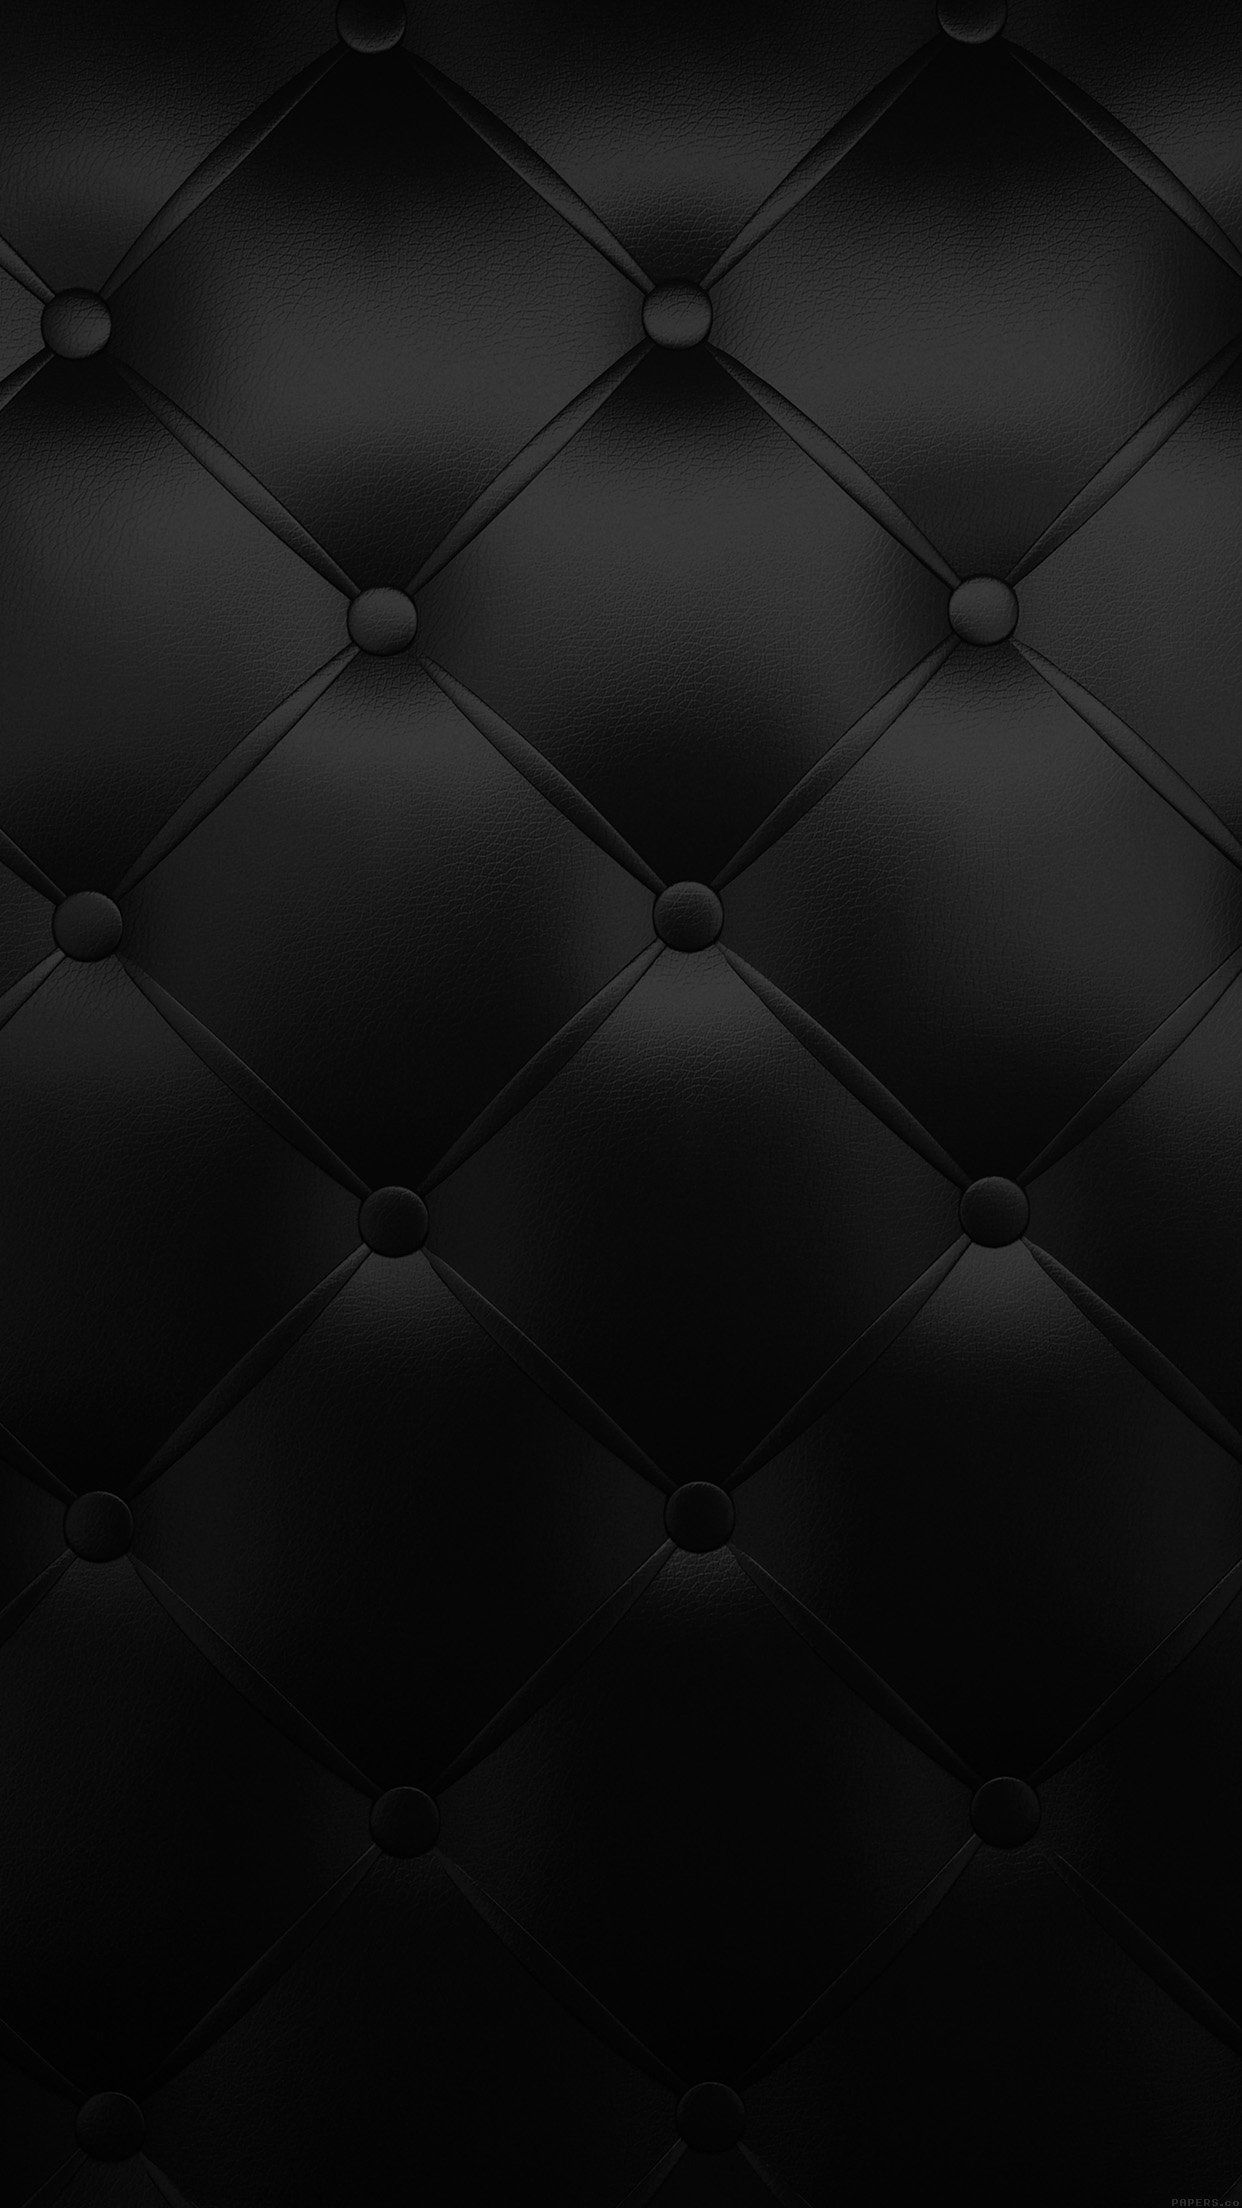 Iphone 7 Plus Wallpapers Top Free Iphone 7 Plus Backgrounds Wallpaperaccess